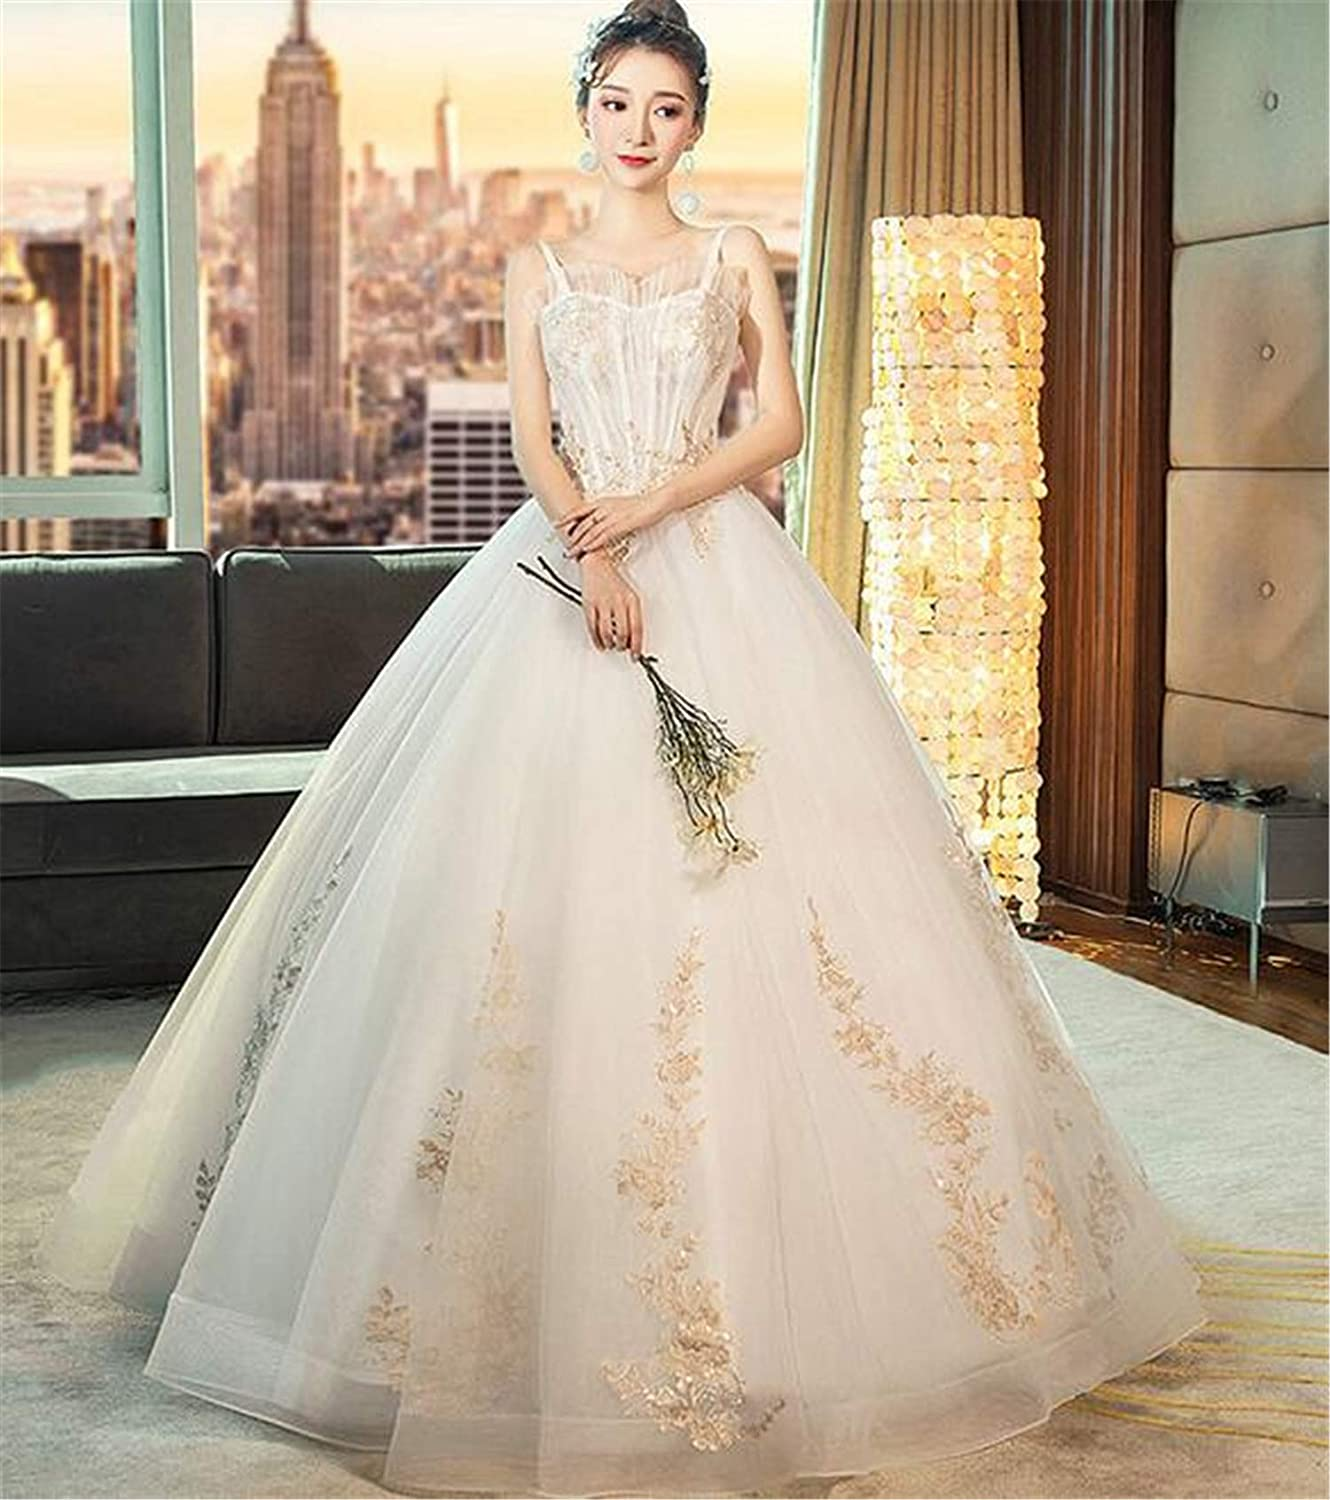 Wedding Dress, Bride Marry Sling Dream Princess Open Back Tutu Lace Embroidery Adjustable Strap Tulle Flower Woman Party Evening